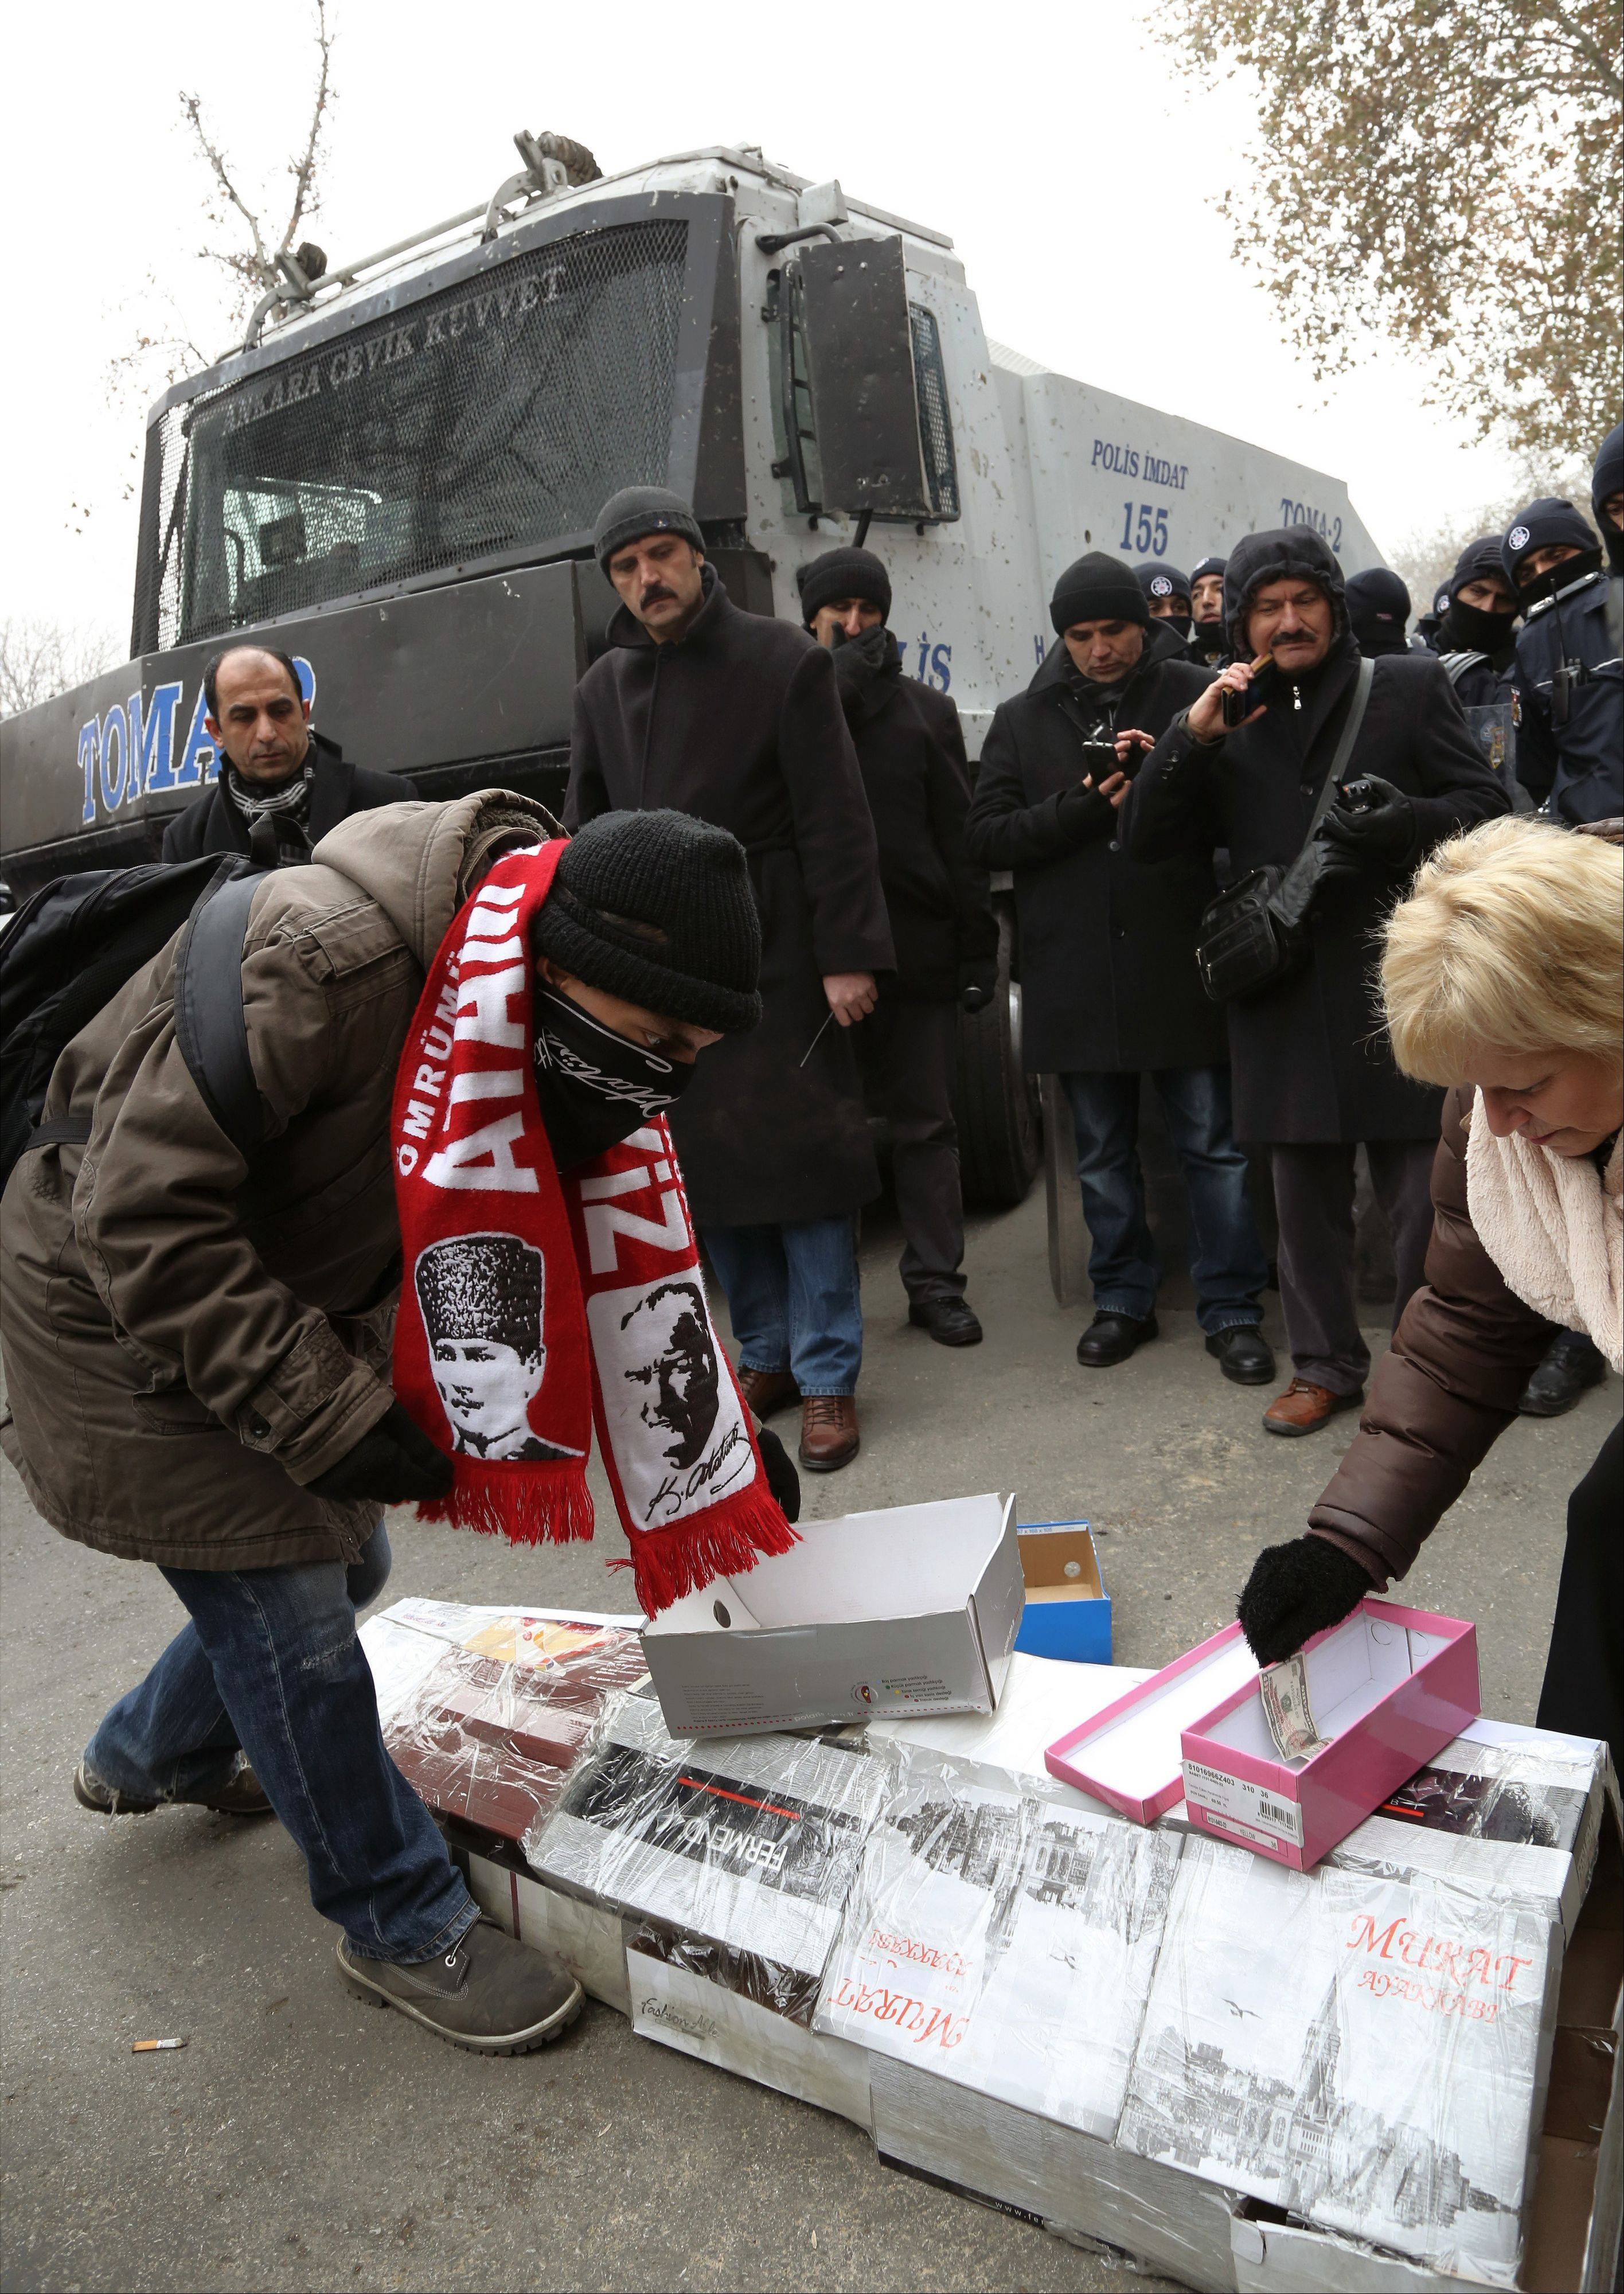 People leave more boxes on a casket made of empty shoe boxes in front of a security barricade during a protest in Ankara, Turkey, Saturday, Dec. 21. Police seized $4.5 million in cash stashed in shoe boxes at the residence of the chief executive officer of a state-owned bank as part of a corruption investigation.